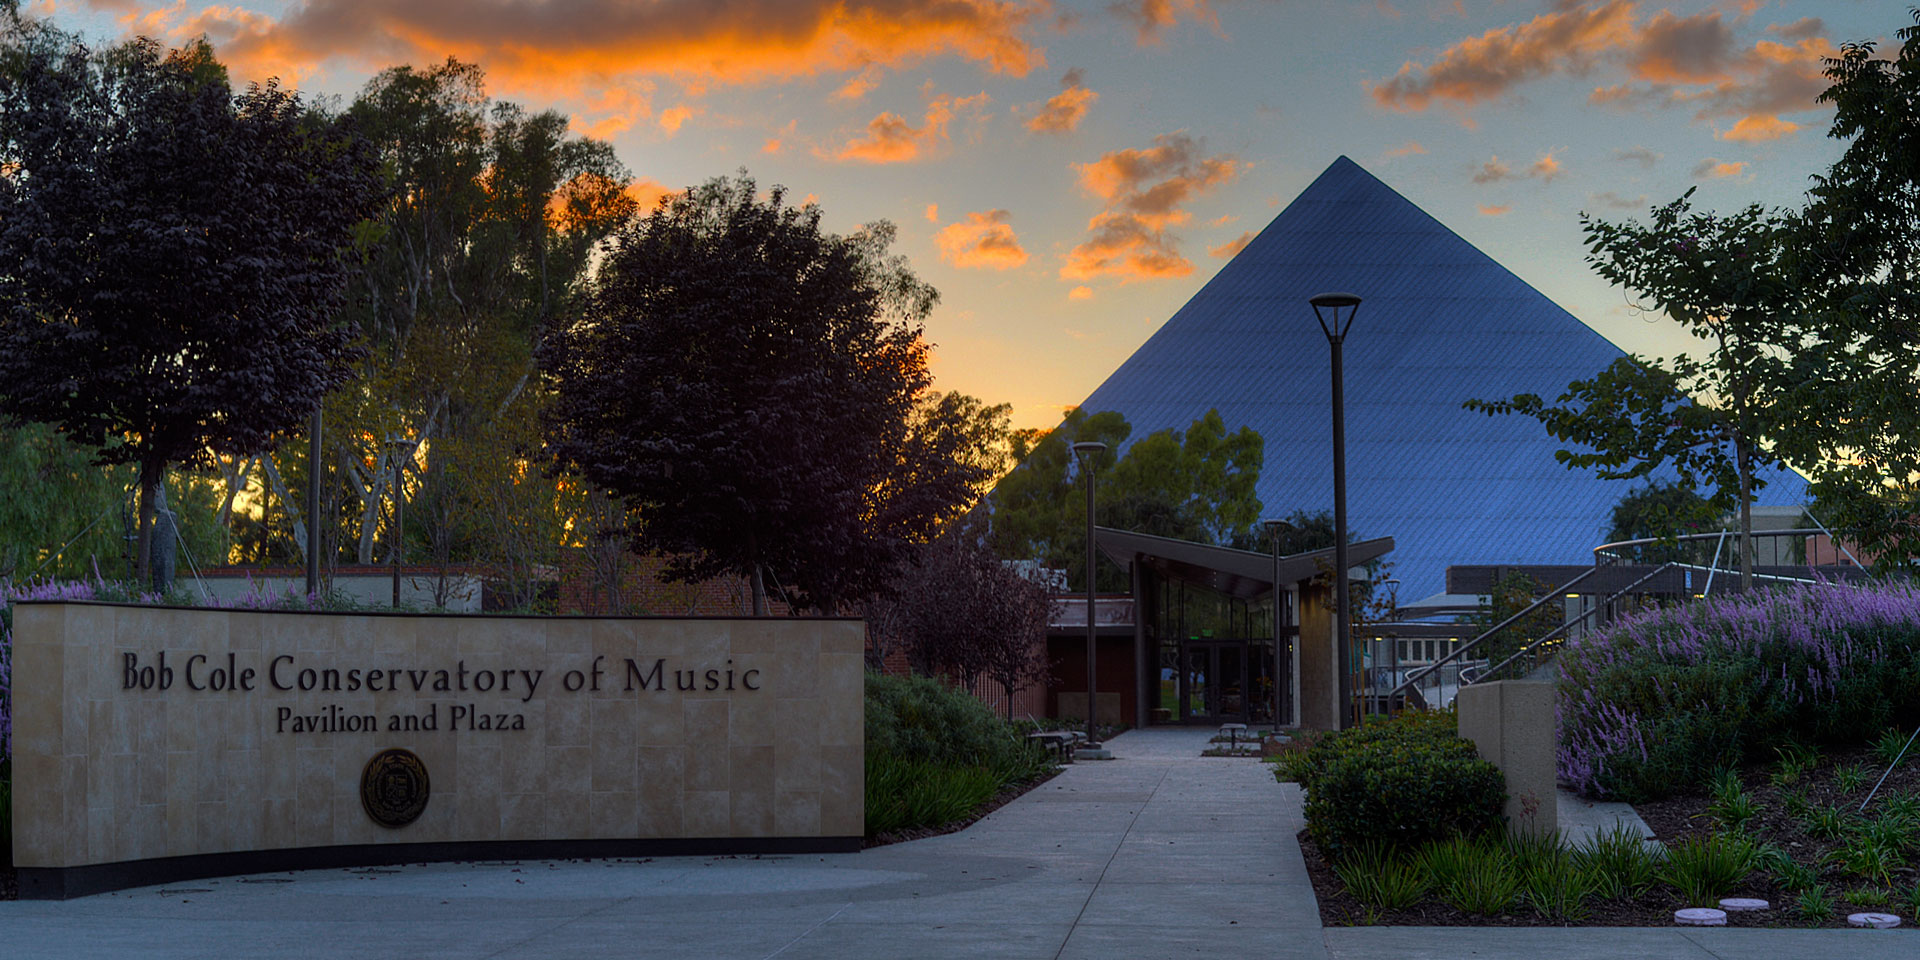 Bob Cole Conservatory Pavilion And Plaza Entrance At Sunset